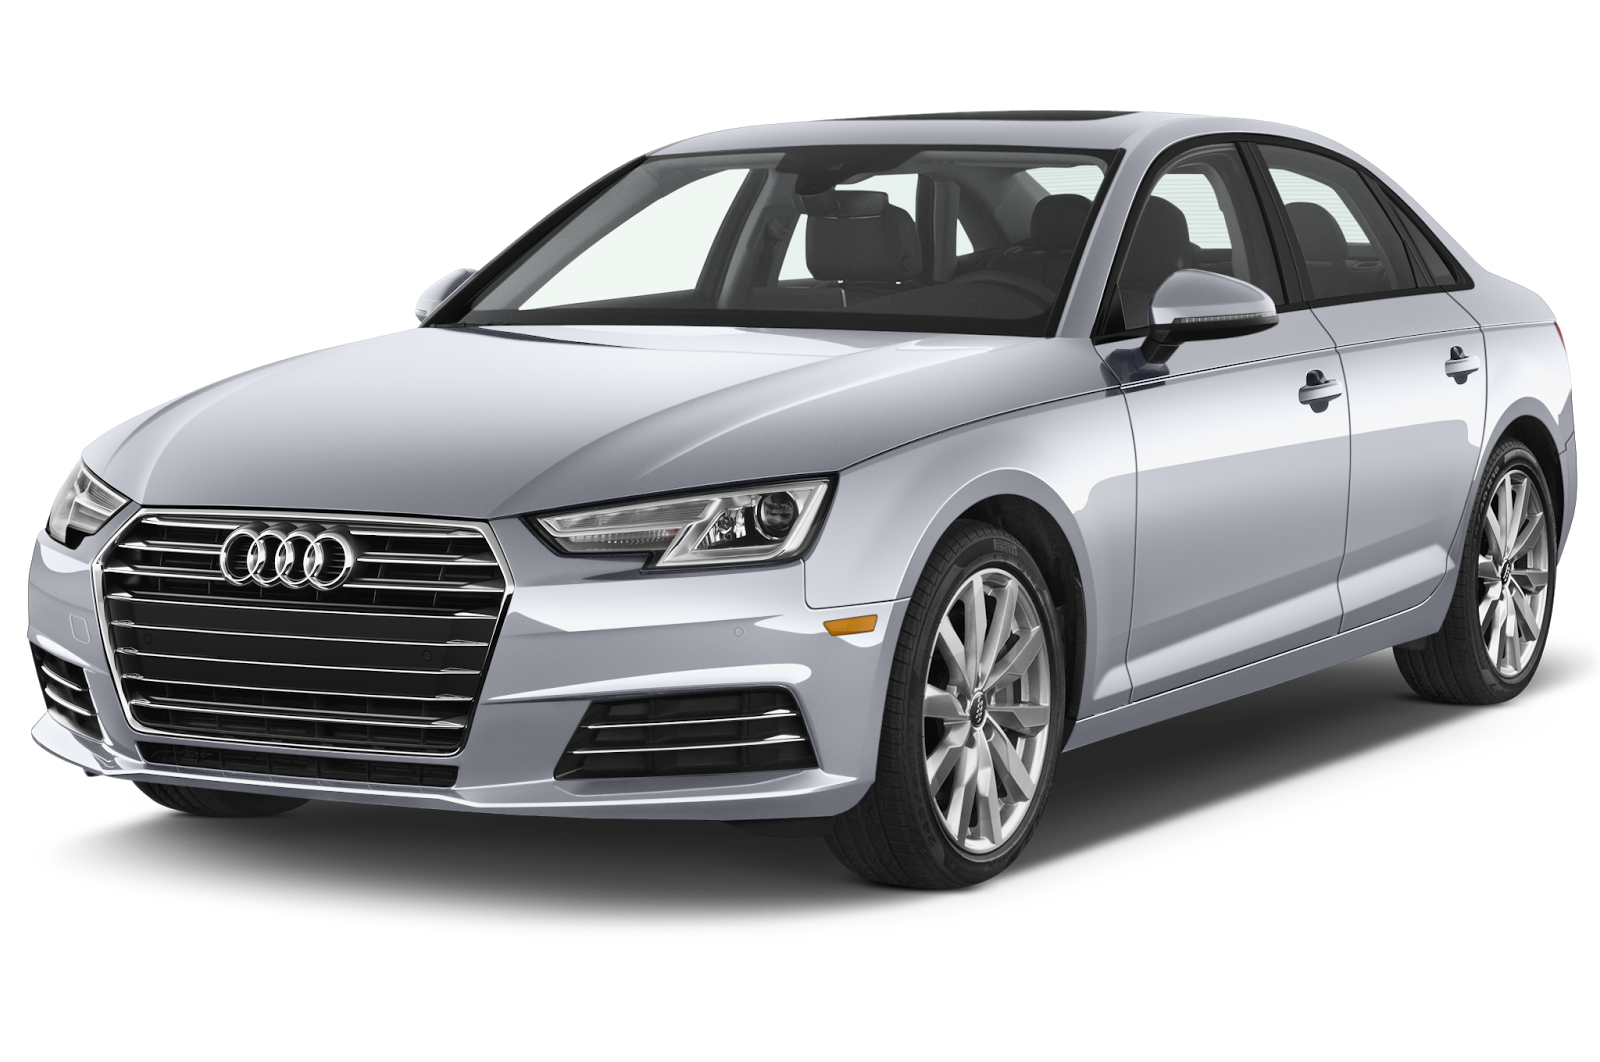 Audi drawing s4. A expert review car